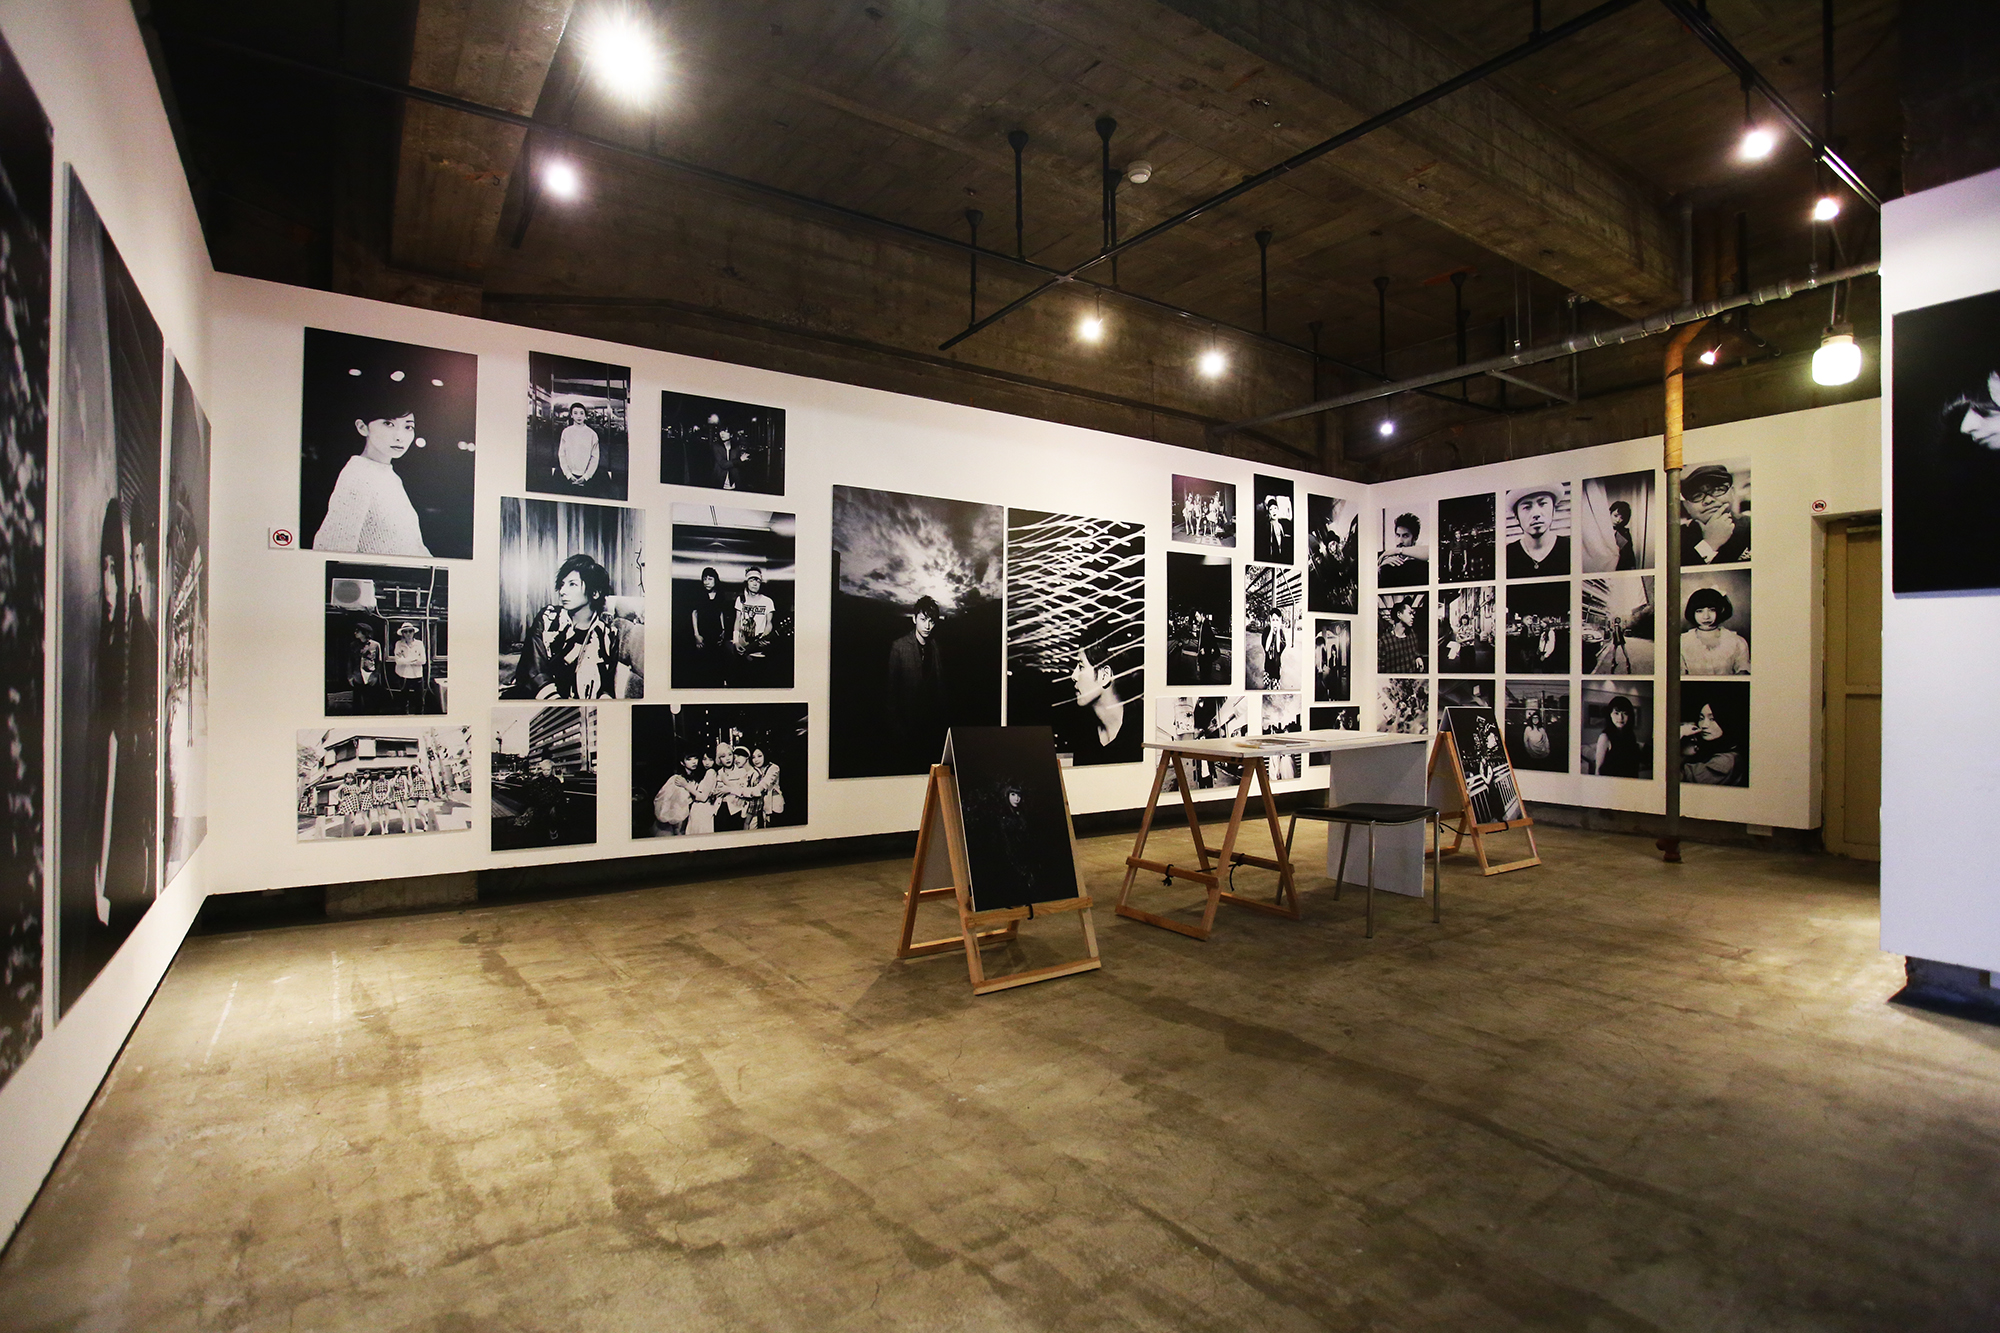 【福岡】GOOD ROCKS! 10th Anniversary PHOTO EXHIBITION PHOTOGRAPHED BY HIROSUKE FUKUMOTO